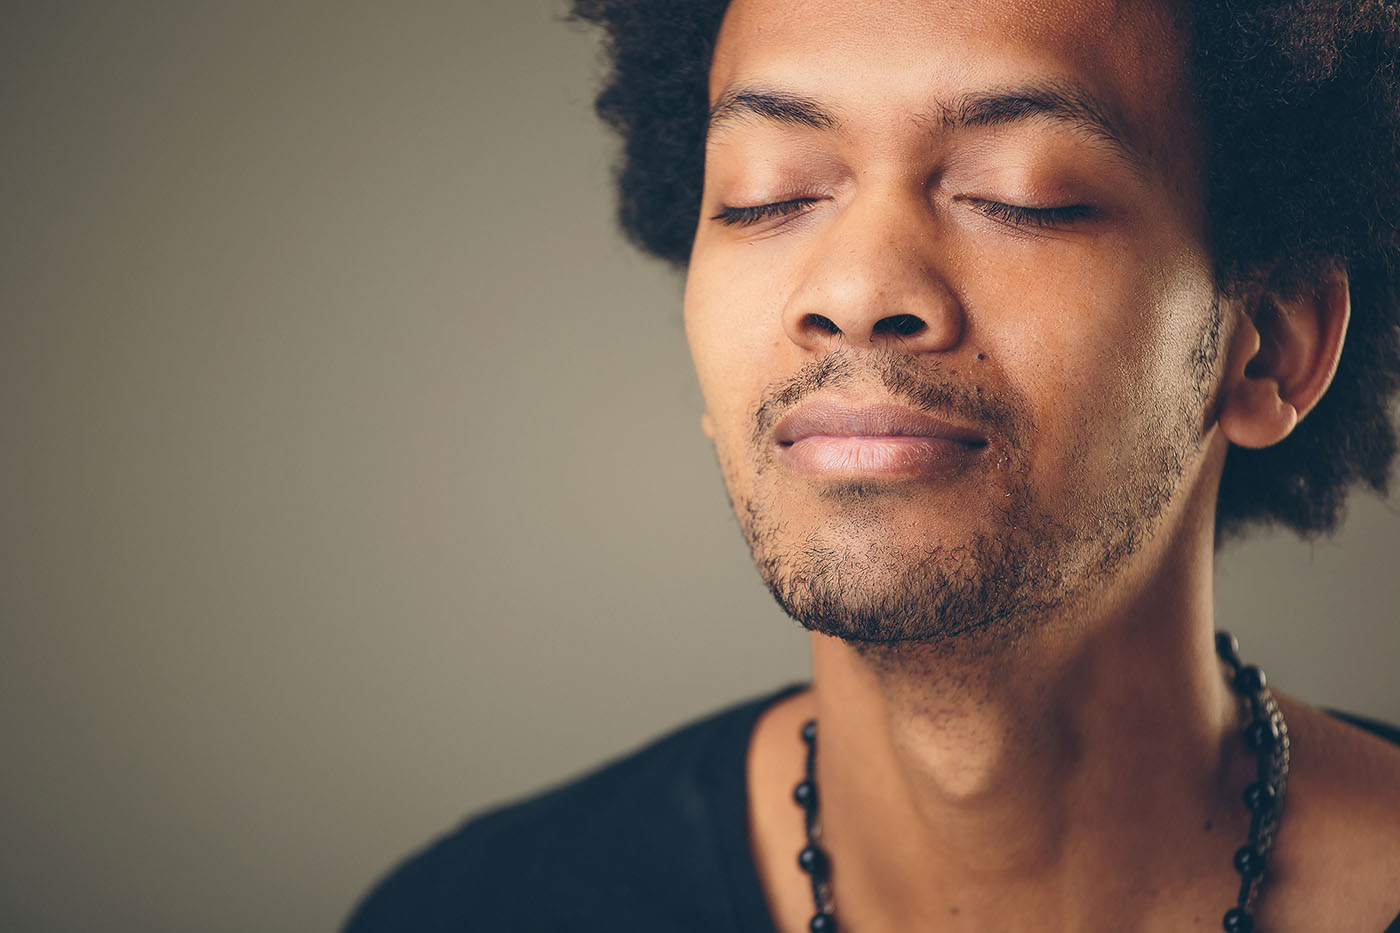 Mindfulness & Meditation: What does the Research Say?